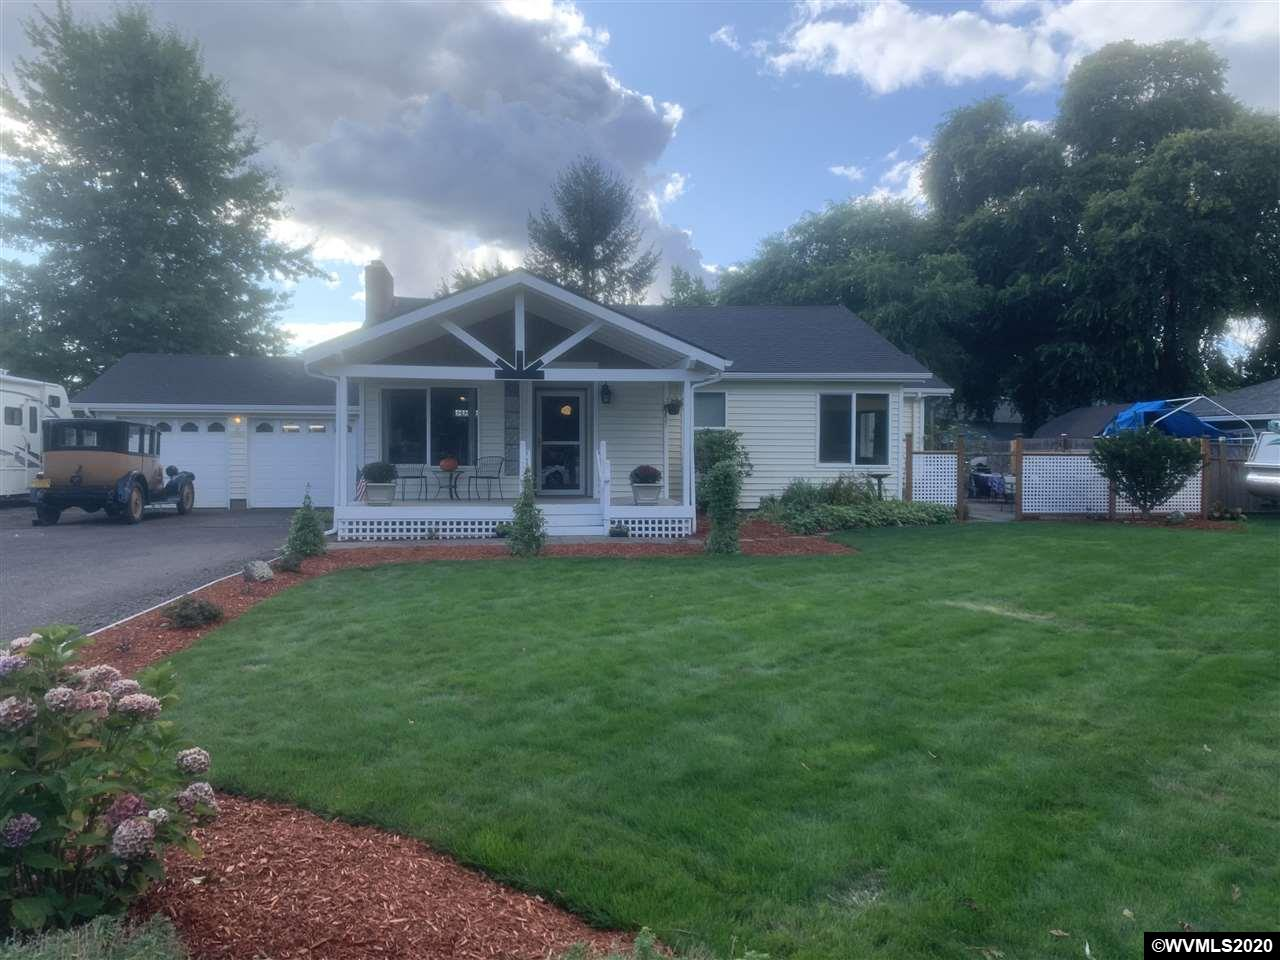 Cute updated home in nice SE neighborhood. Newer kitchen with custom cabinets, gas/electric range w/dual oven and coffee bar with 220 electric & water.  Master bedroom suite boasts newer master bath with dual shower stalls & walk-in handicap accessible area. Original refinished hardwood floors, fireplace double car garage, private well, RV space w/water and electrical hookups, large parking area, beautiful outdoor patio and landscaped areas and charm of the 1950s makes this the perfect move-in ready home.